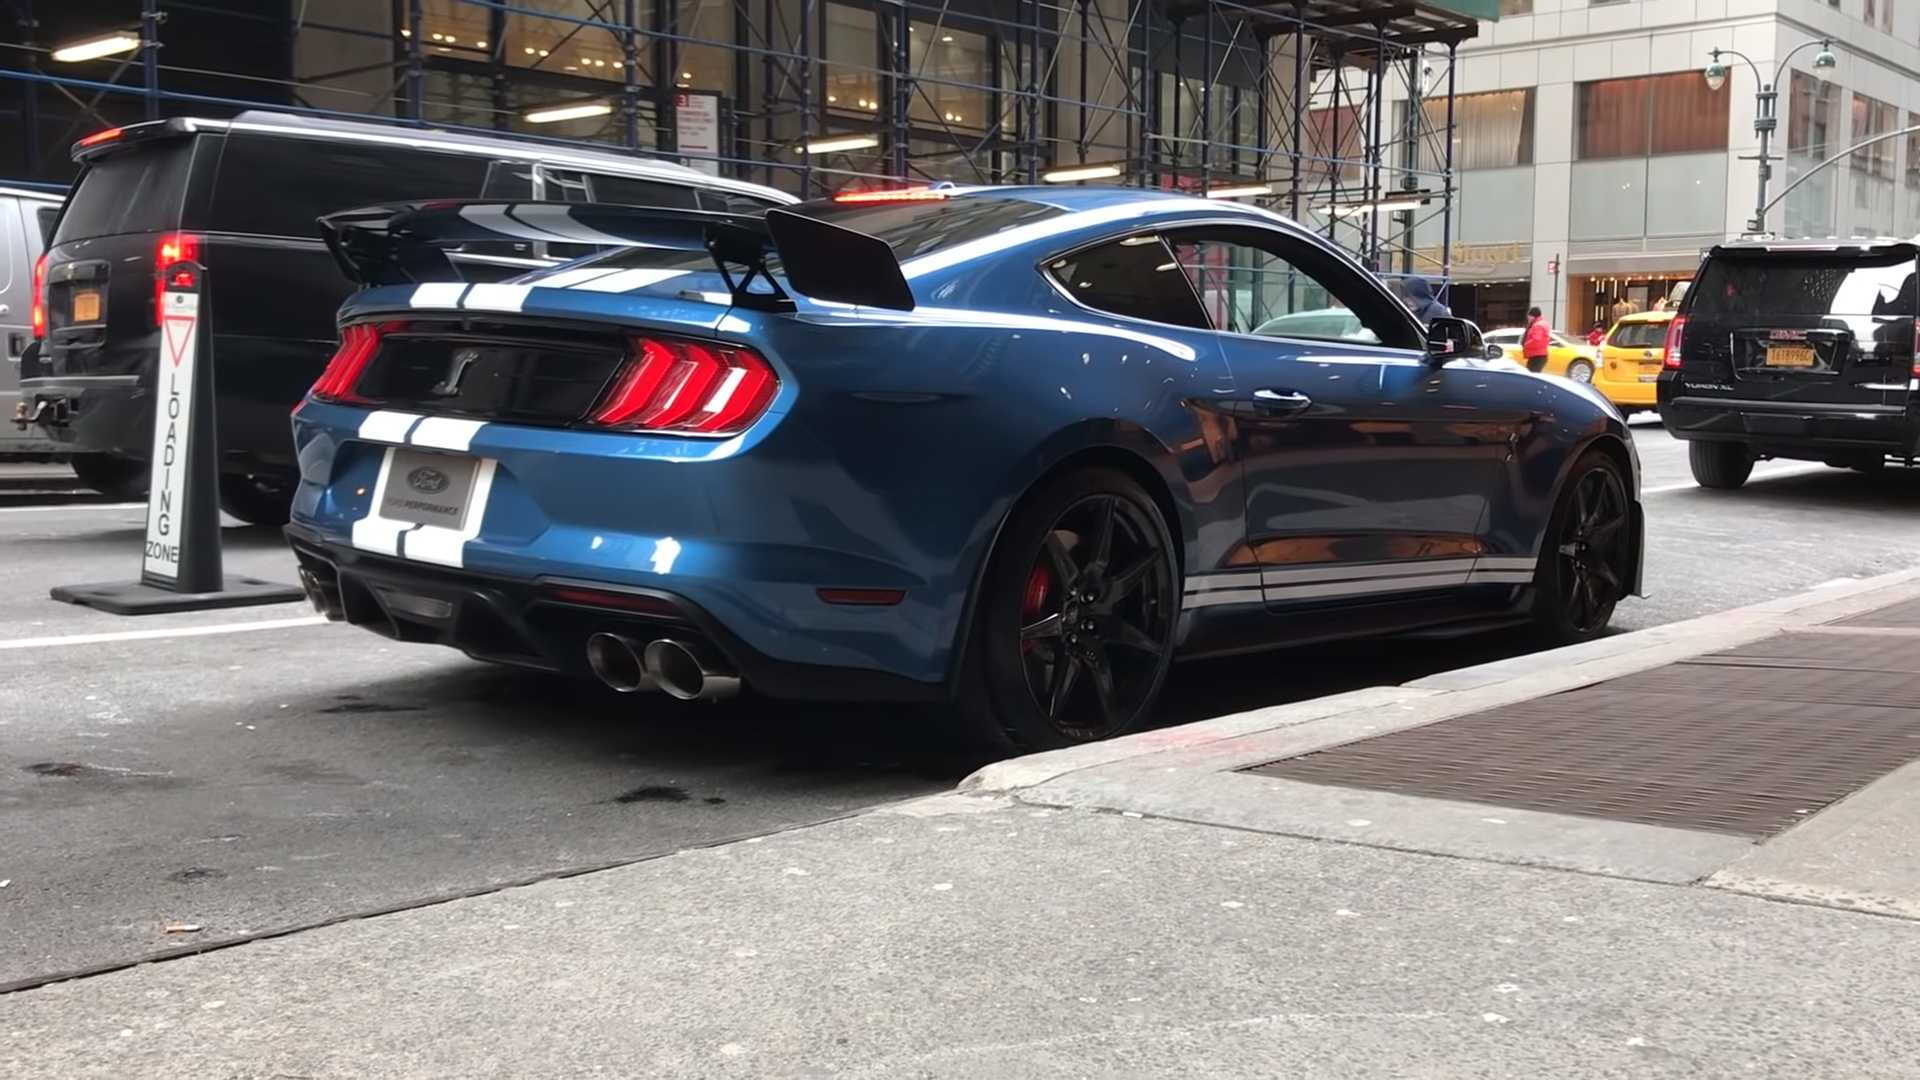 57 New 2020 Mustang Gt500 Exterior